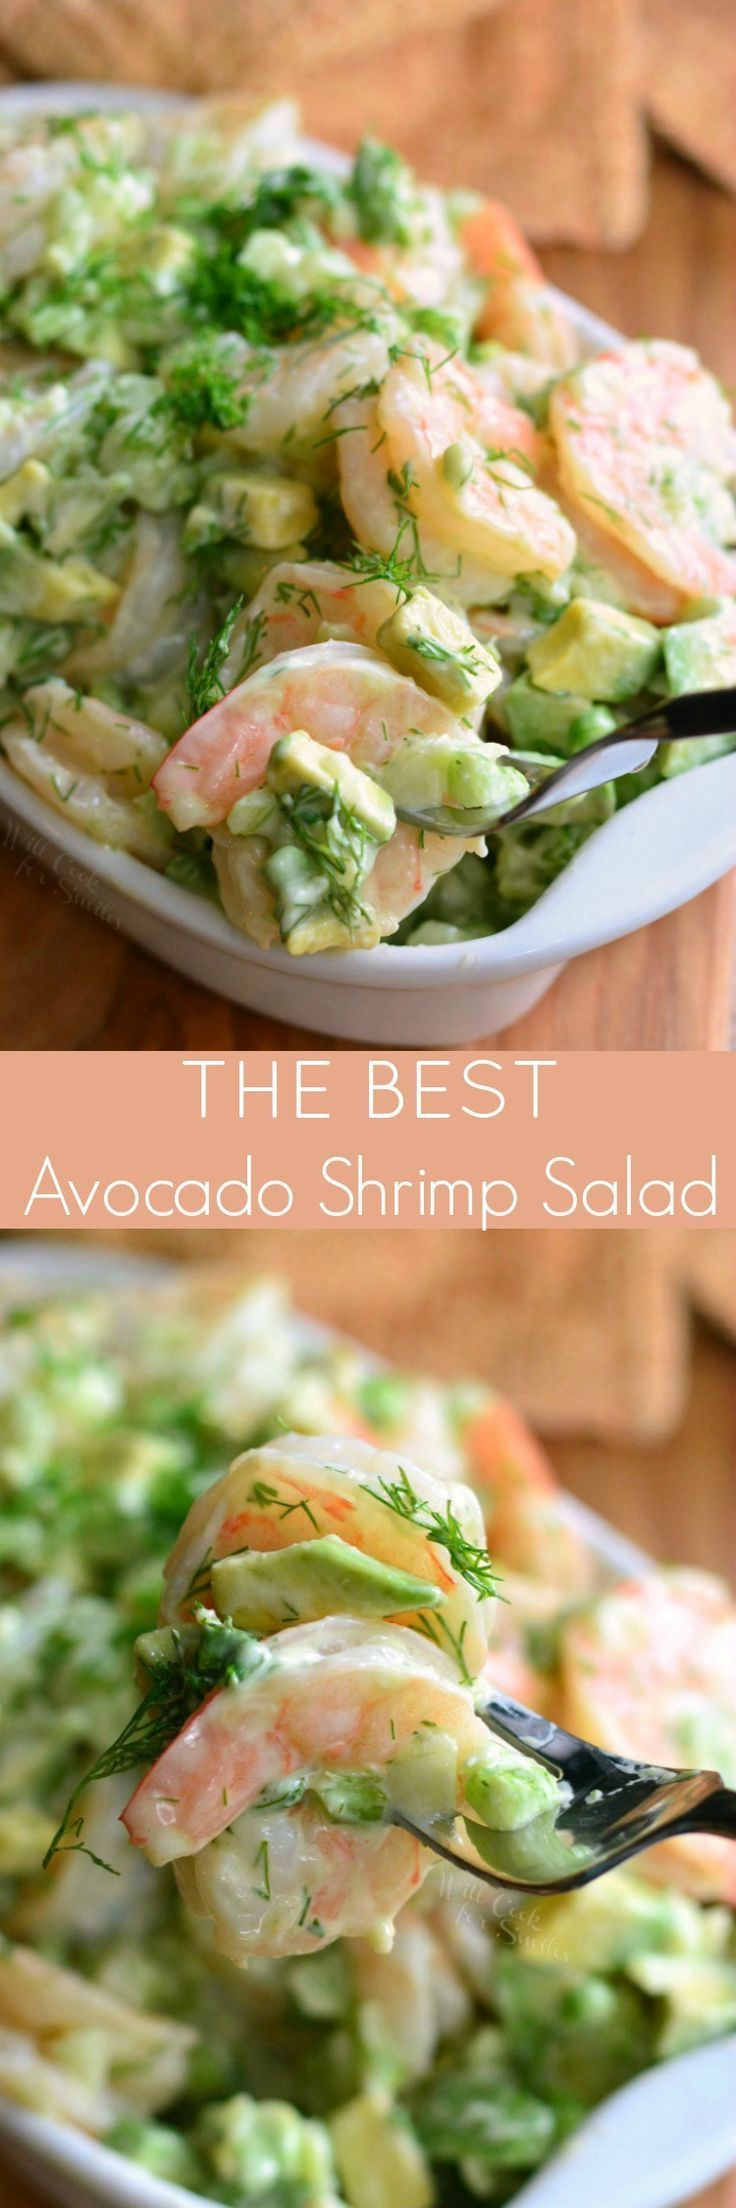 The BEST Avocado Cold Shrimp Salad. This shrimp salad is made with delicious boiled shrimp, fresh avocado, fresh dill week, green onions, and some celery for added crunch.